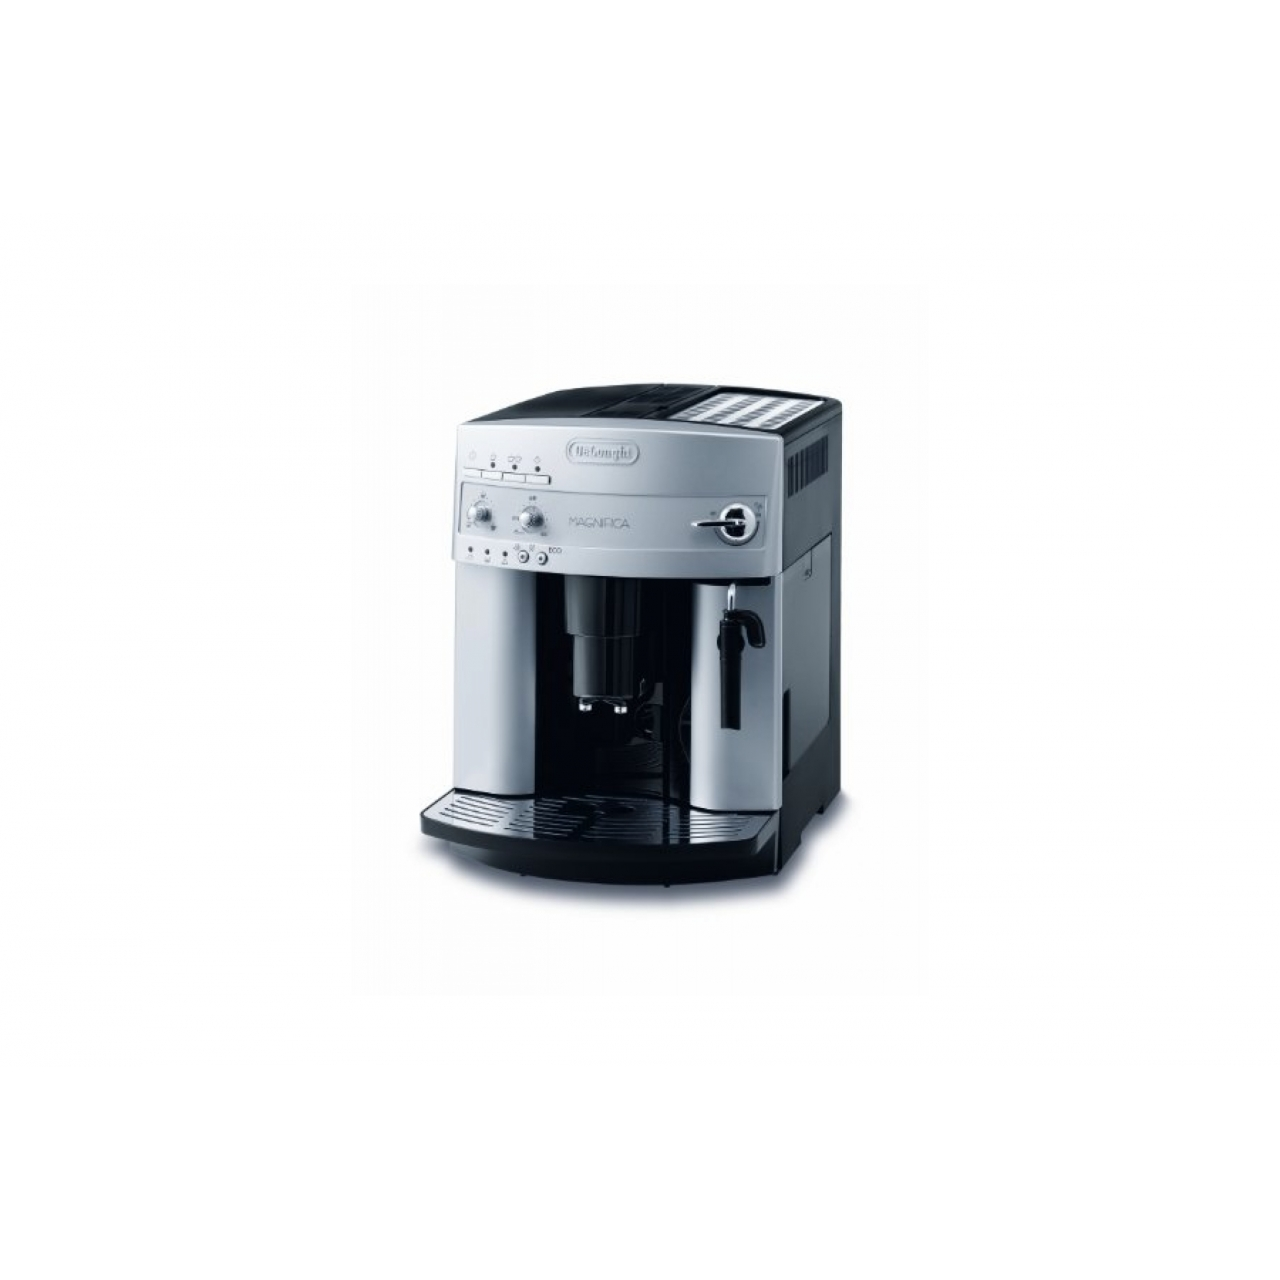 delonghi esam 3200 s magnifica test. Black Bedroom Furniture Sets. Home Design Ideas